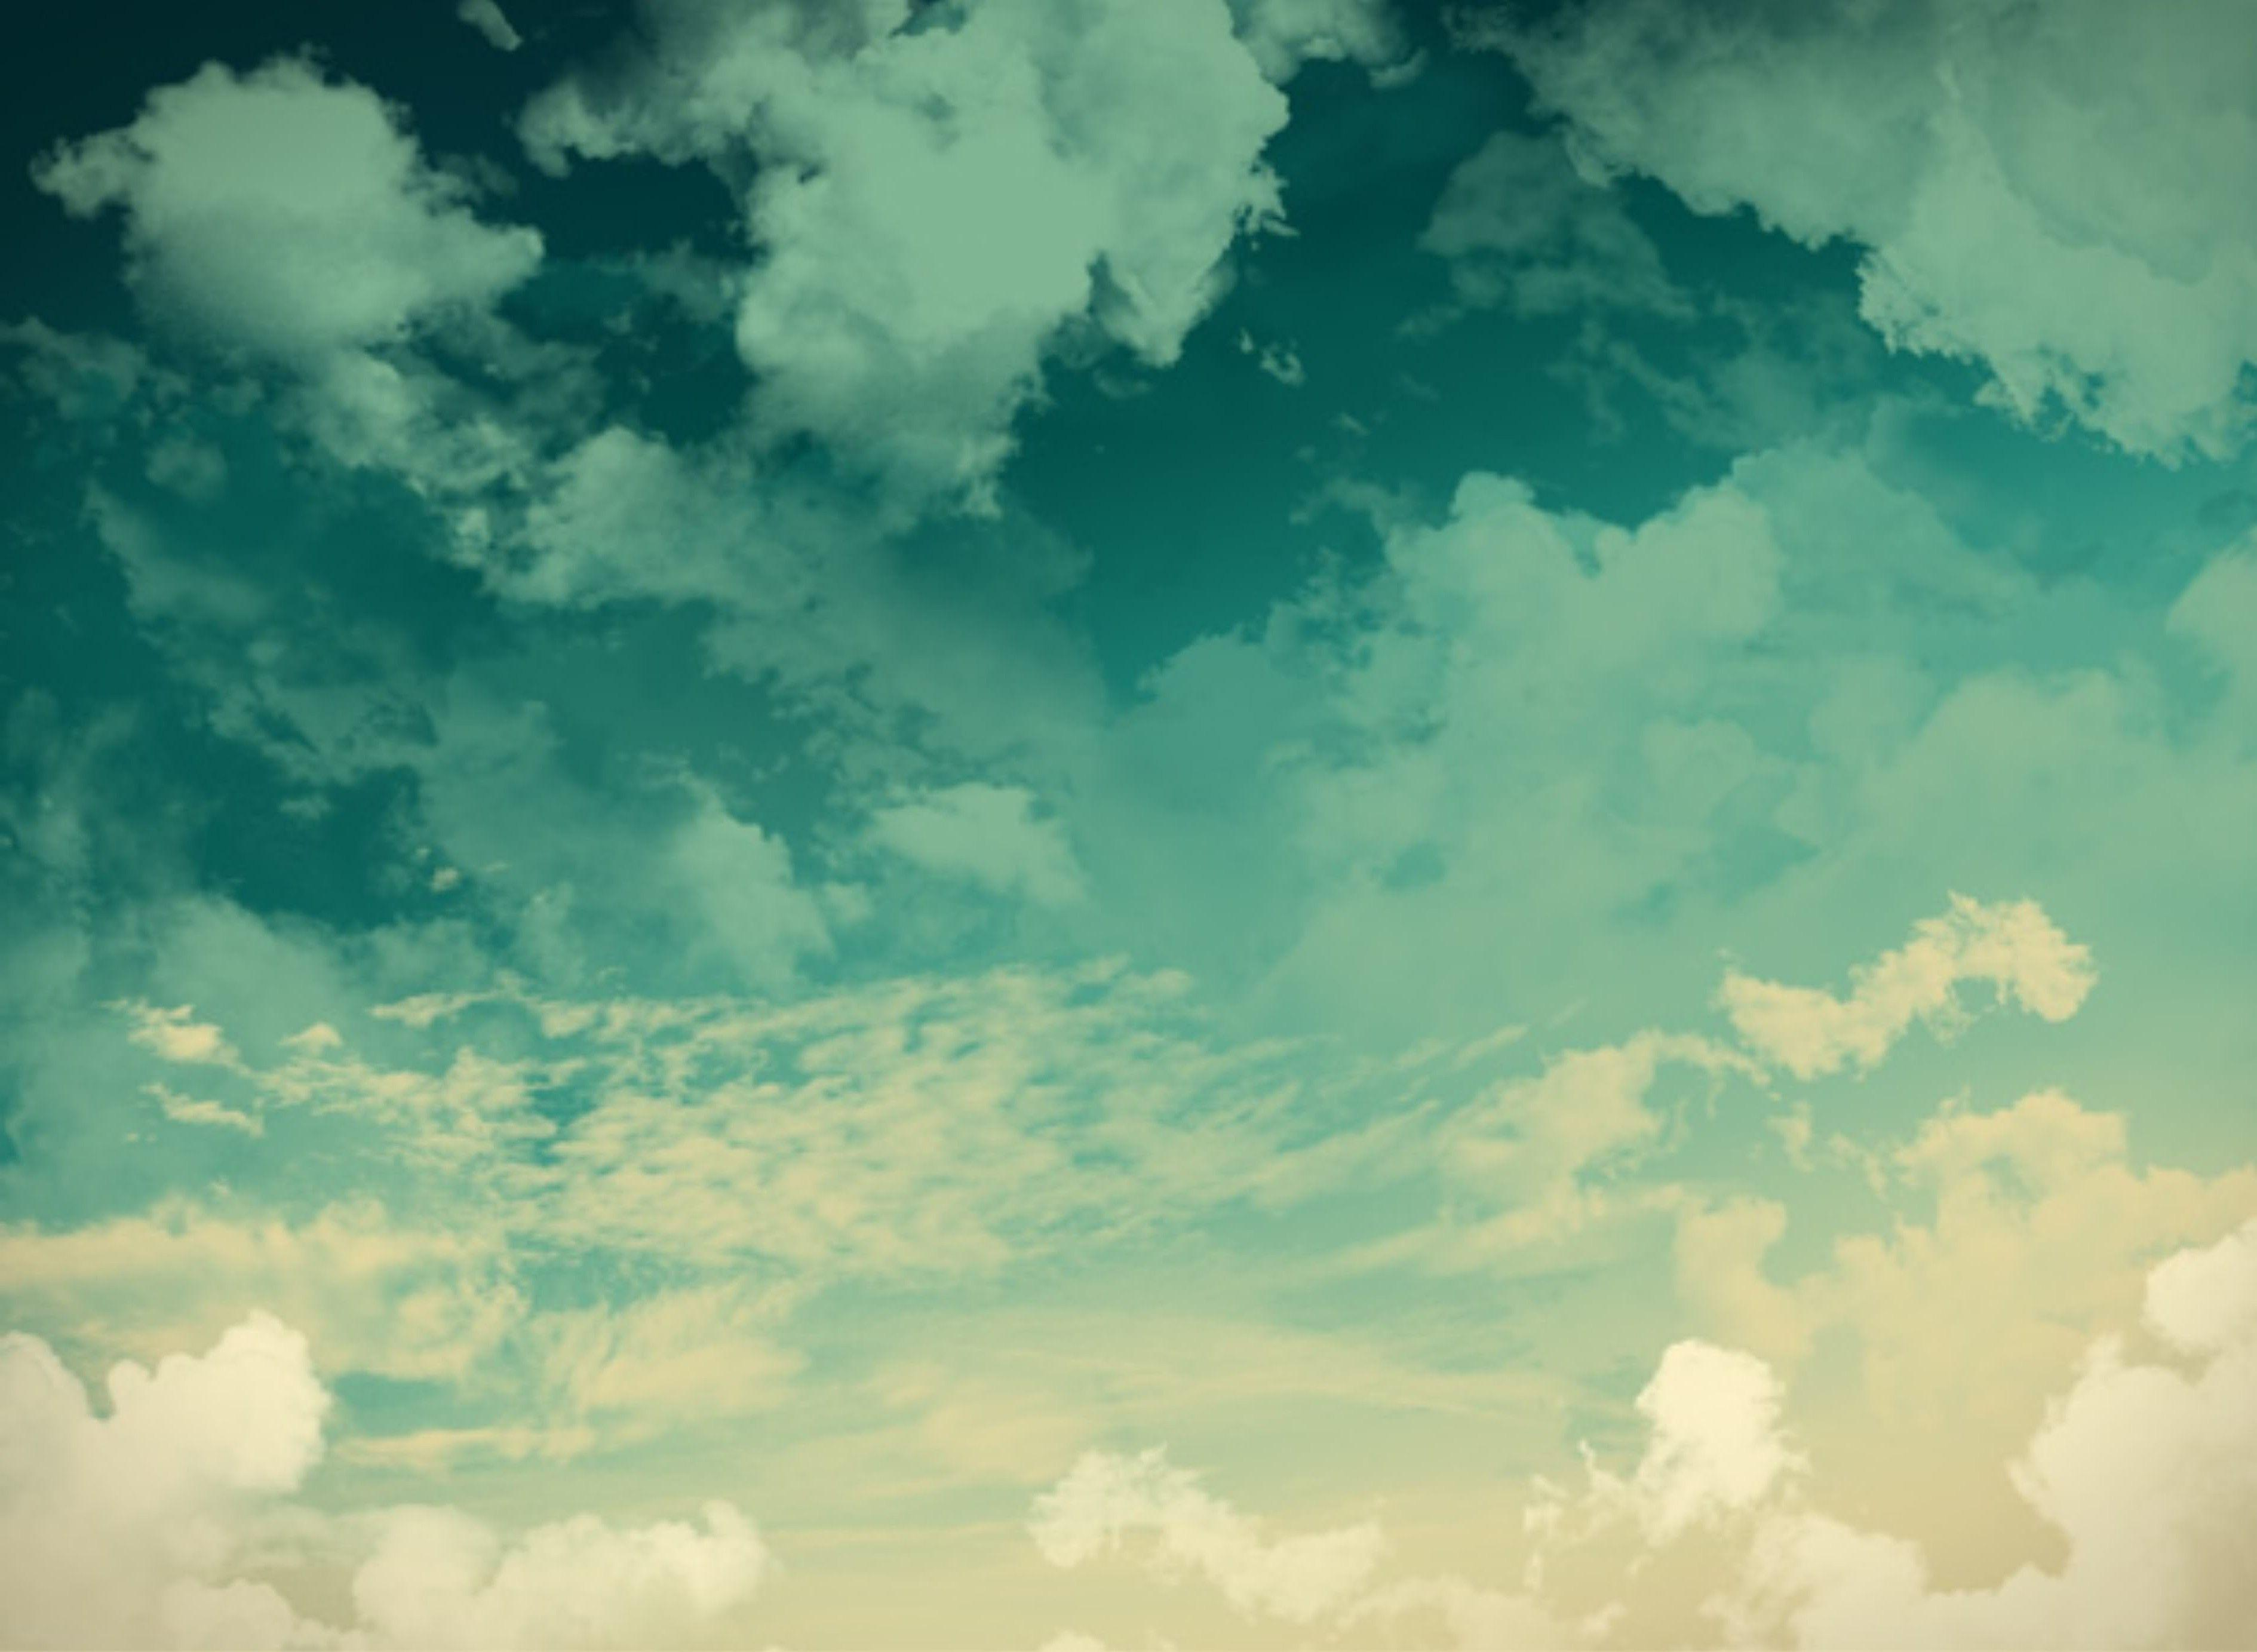 Sky Background Images - Wallpaper Cave